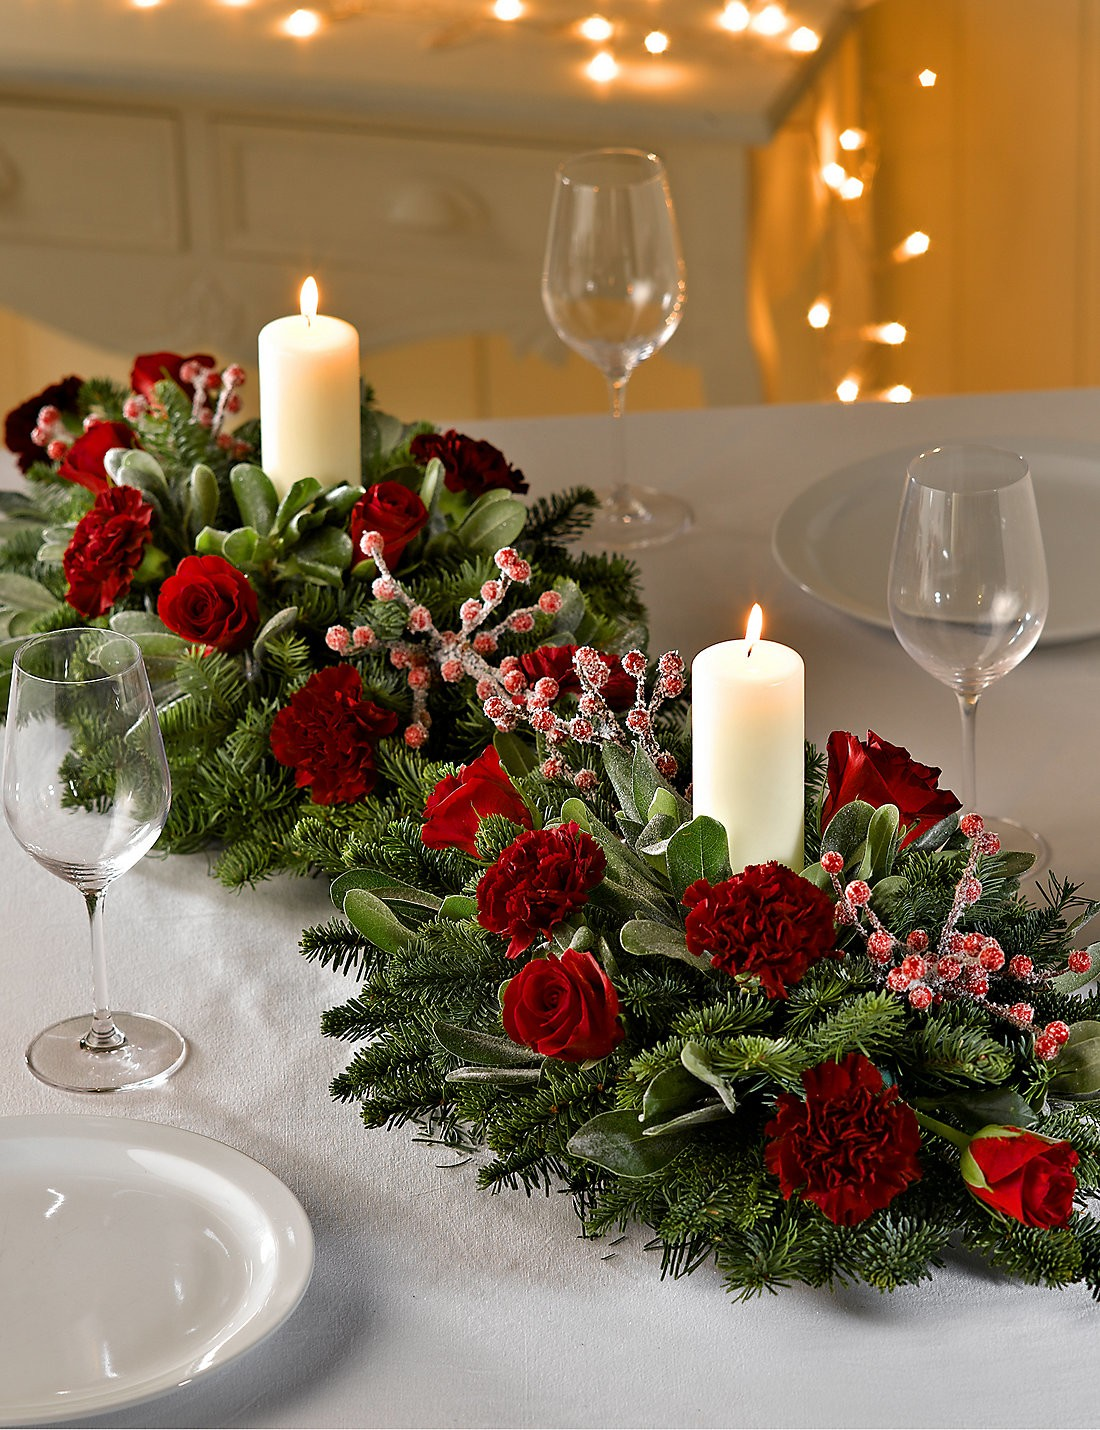 Christmas table decoration ⋆ christ church colne